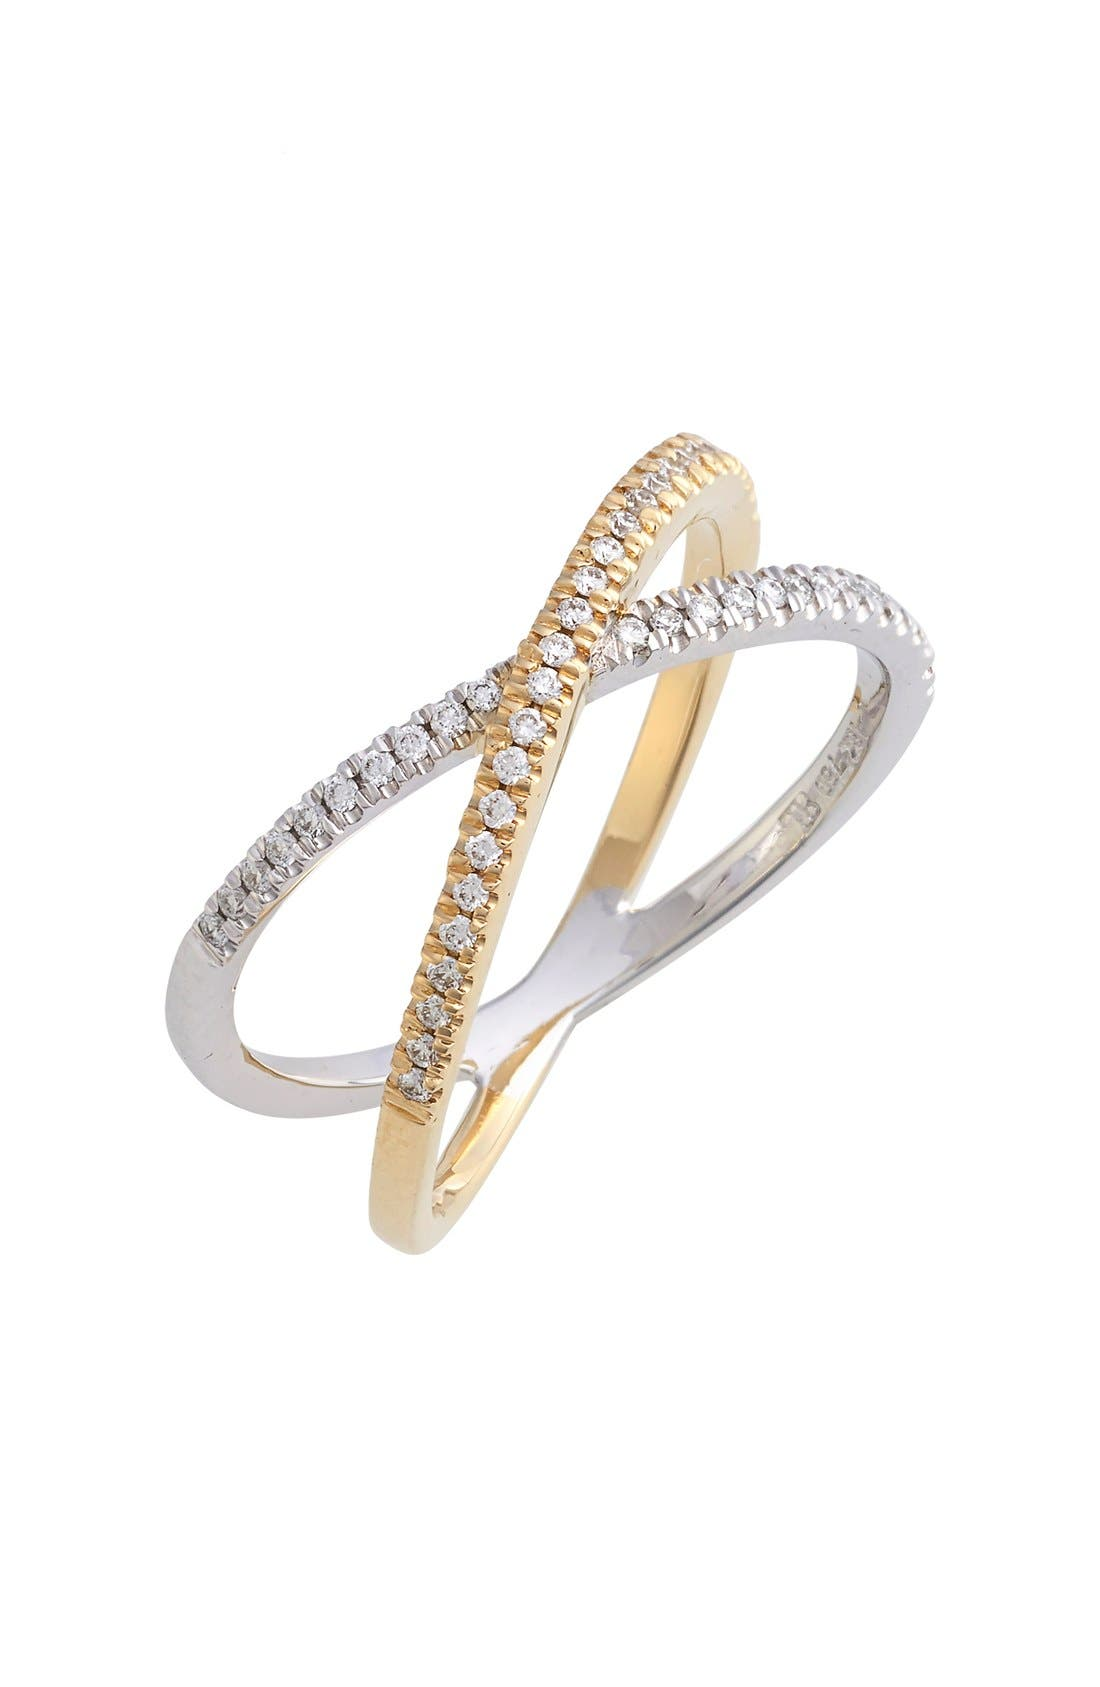 Stackable Crossover Diamond Ring,                         Main,                         color, WHITE GOLD/ YELLOW GOLD